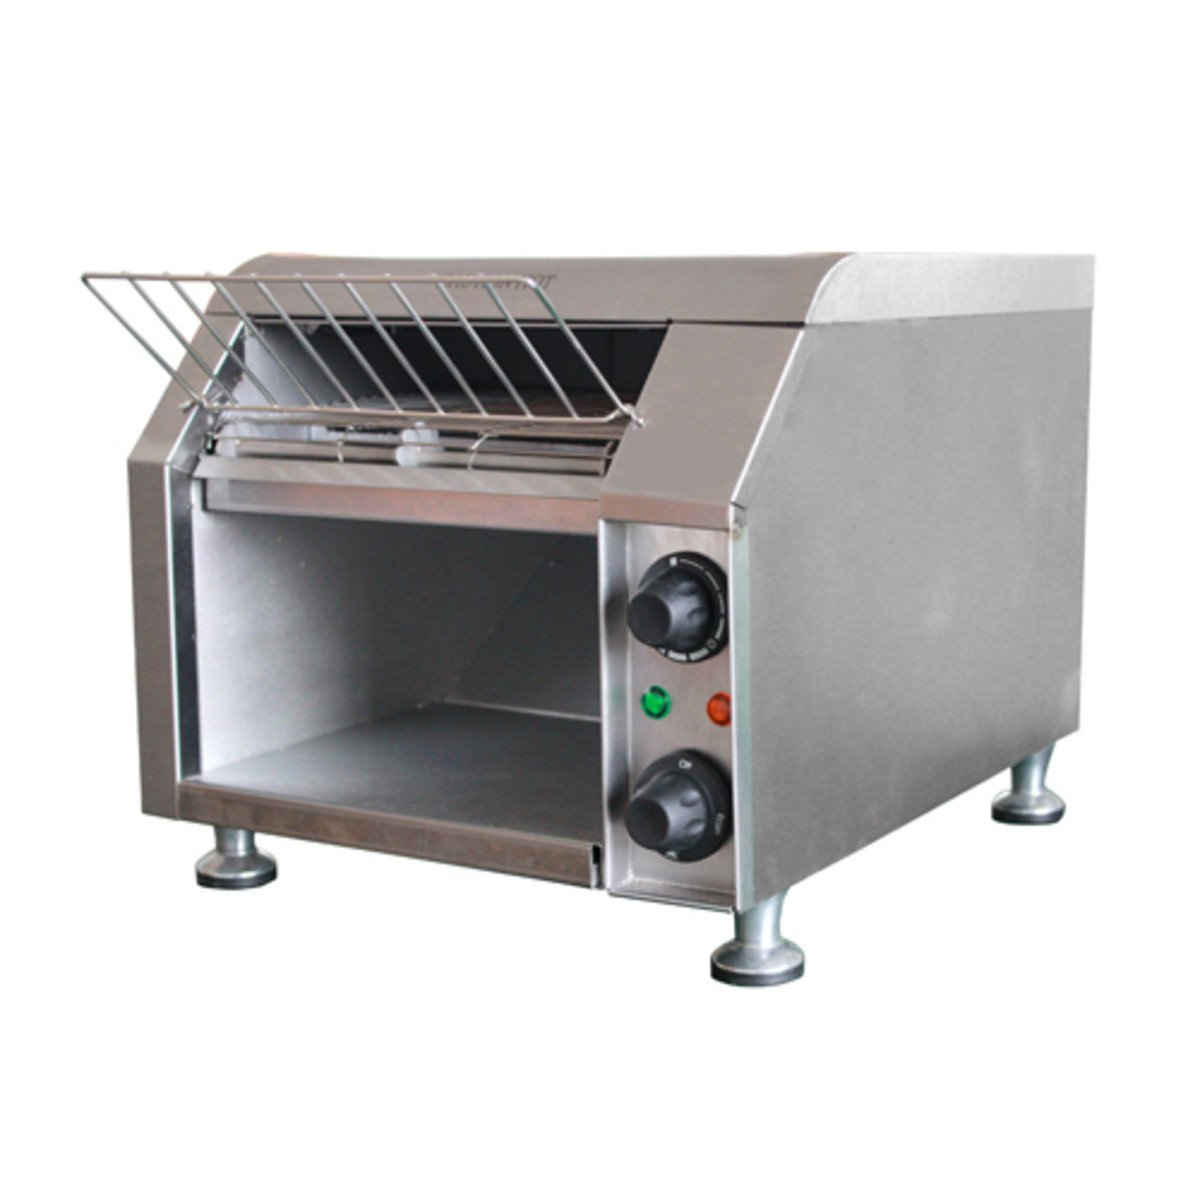 Adcraft Stainless Steel Conveyor Toaster, 13.5 x 14.5 x 19.5 inch -- 1 each.